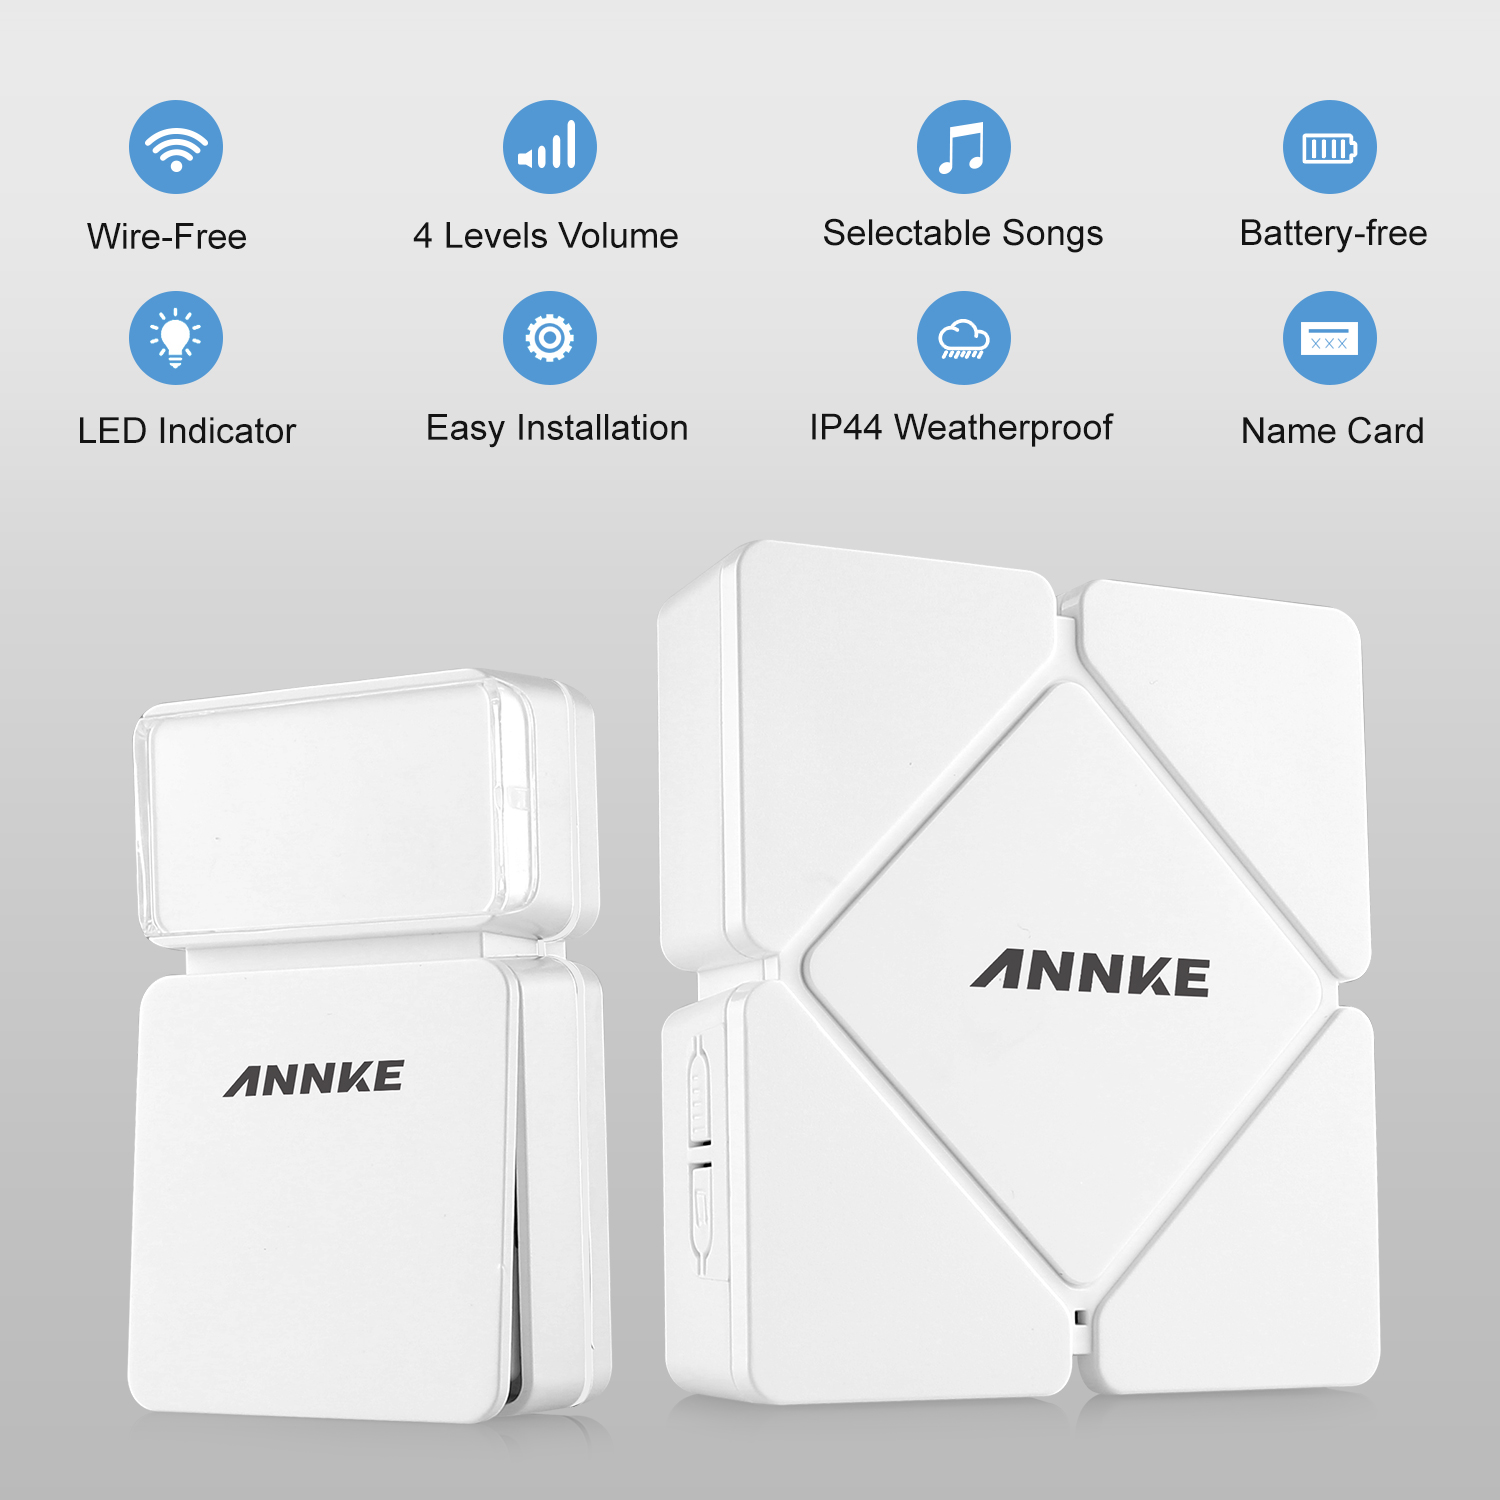 ANNKE Battery-Free Wireless 110m Waterproof Doorbell Chime Kit